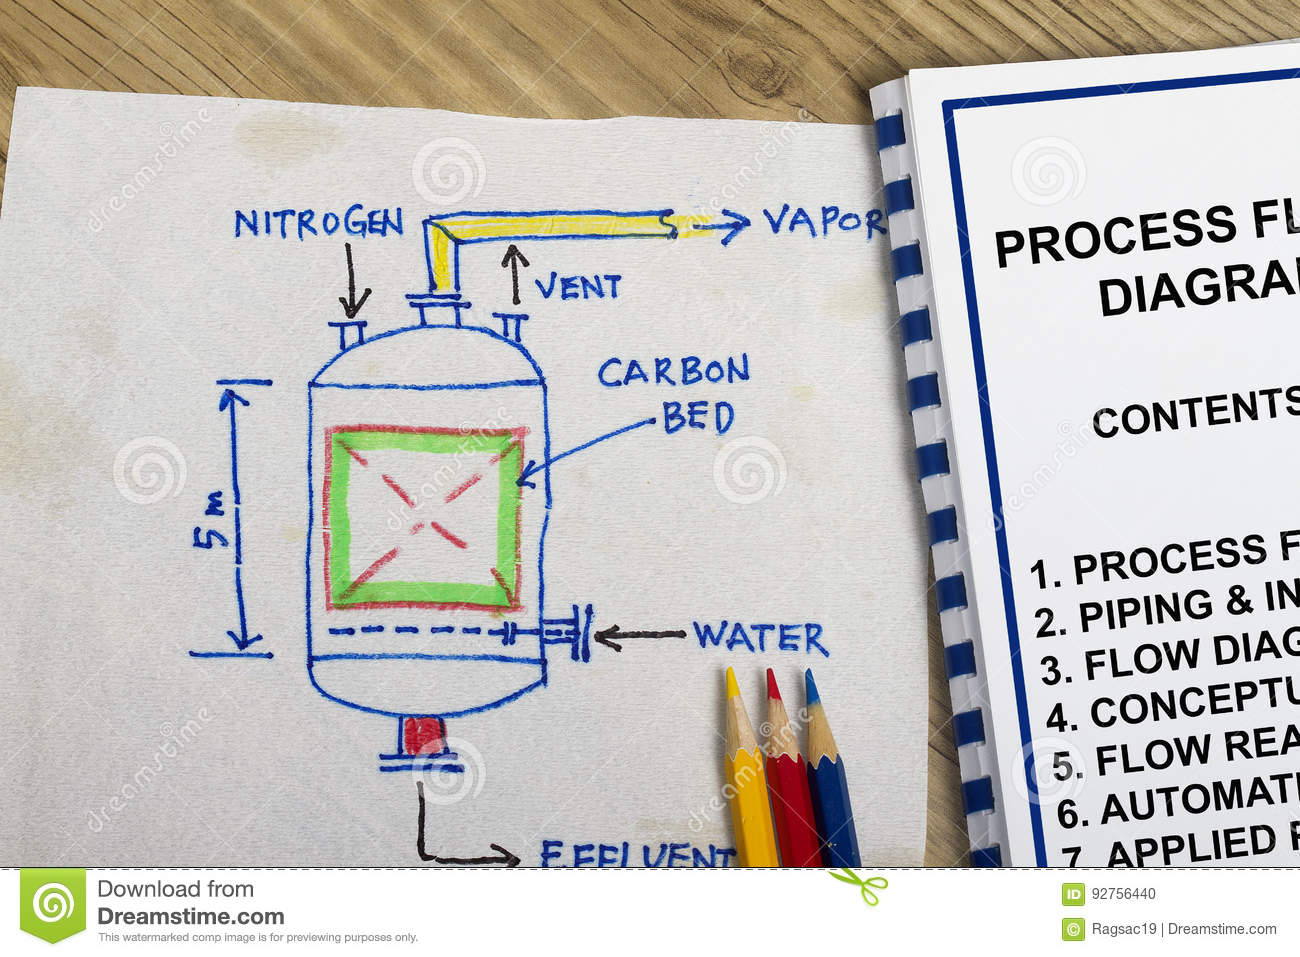 Download Process flow diagram stock photo. Image of engineering - 92756440